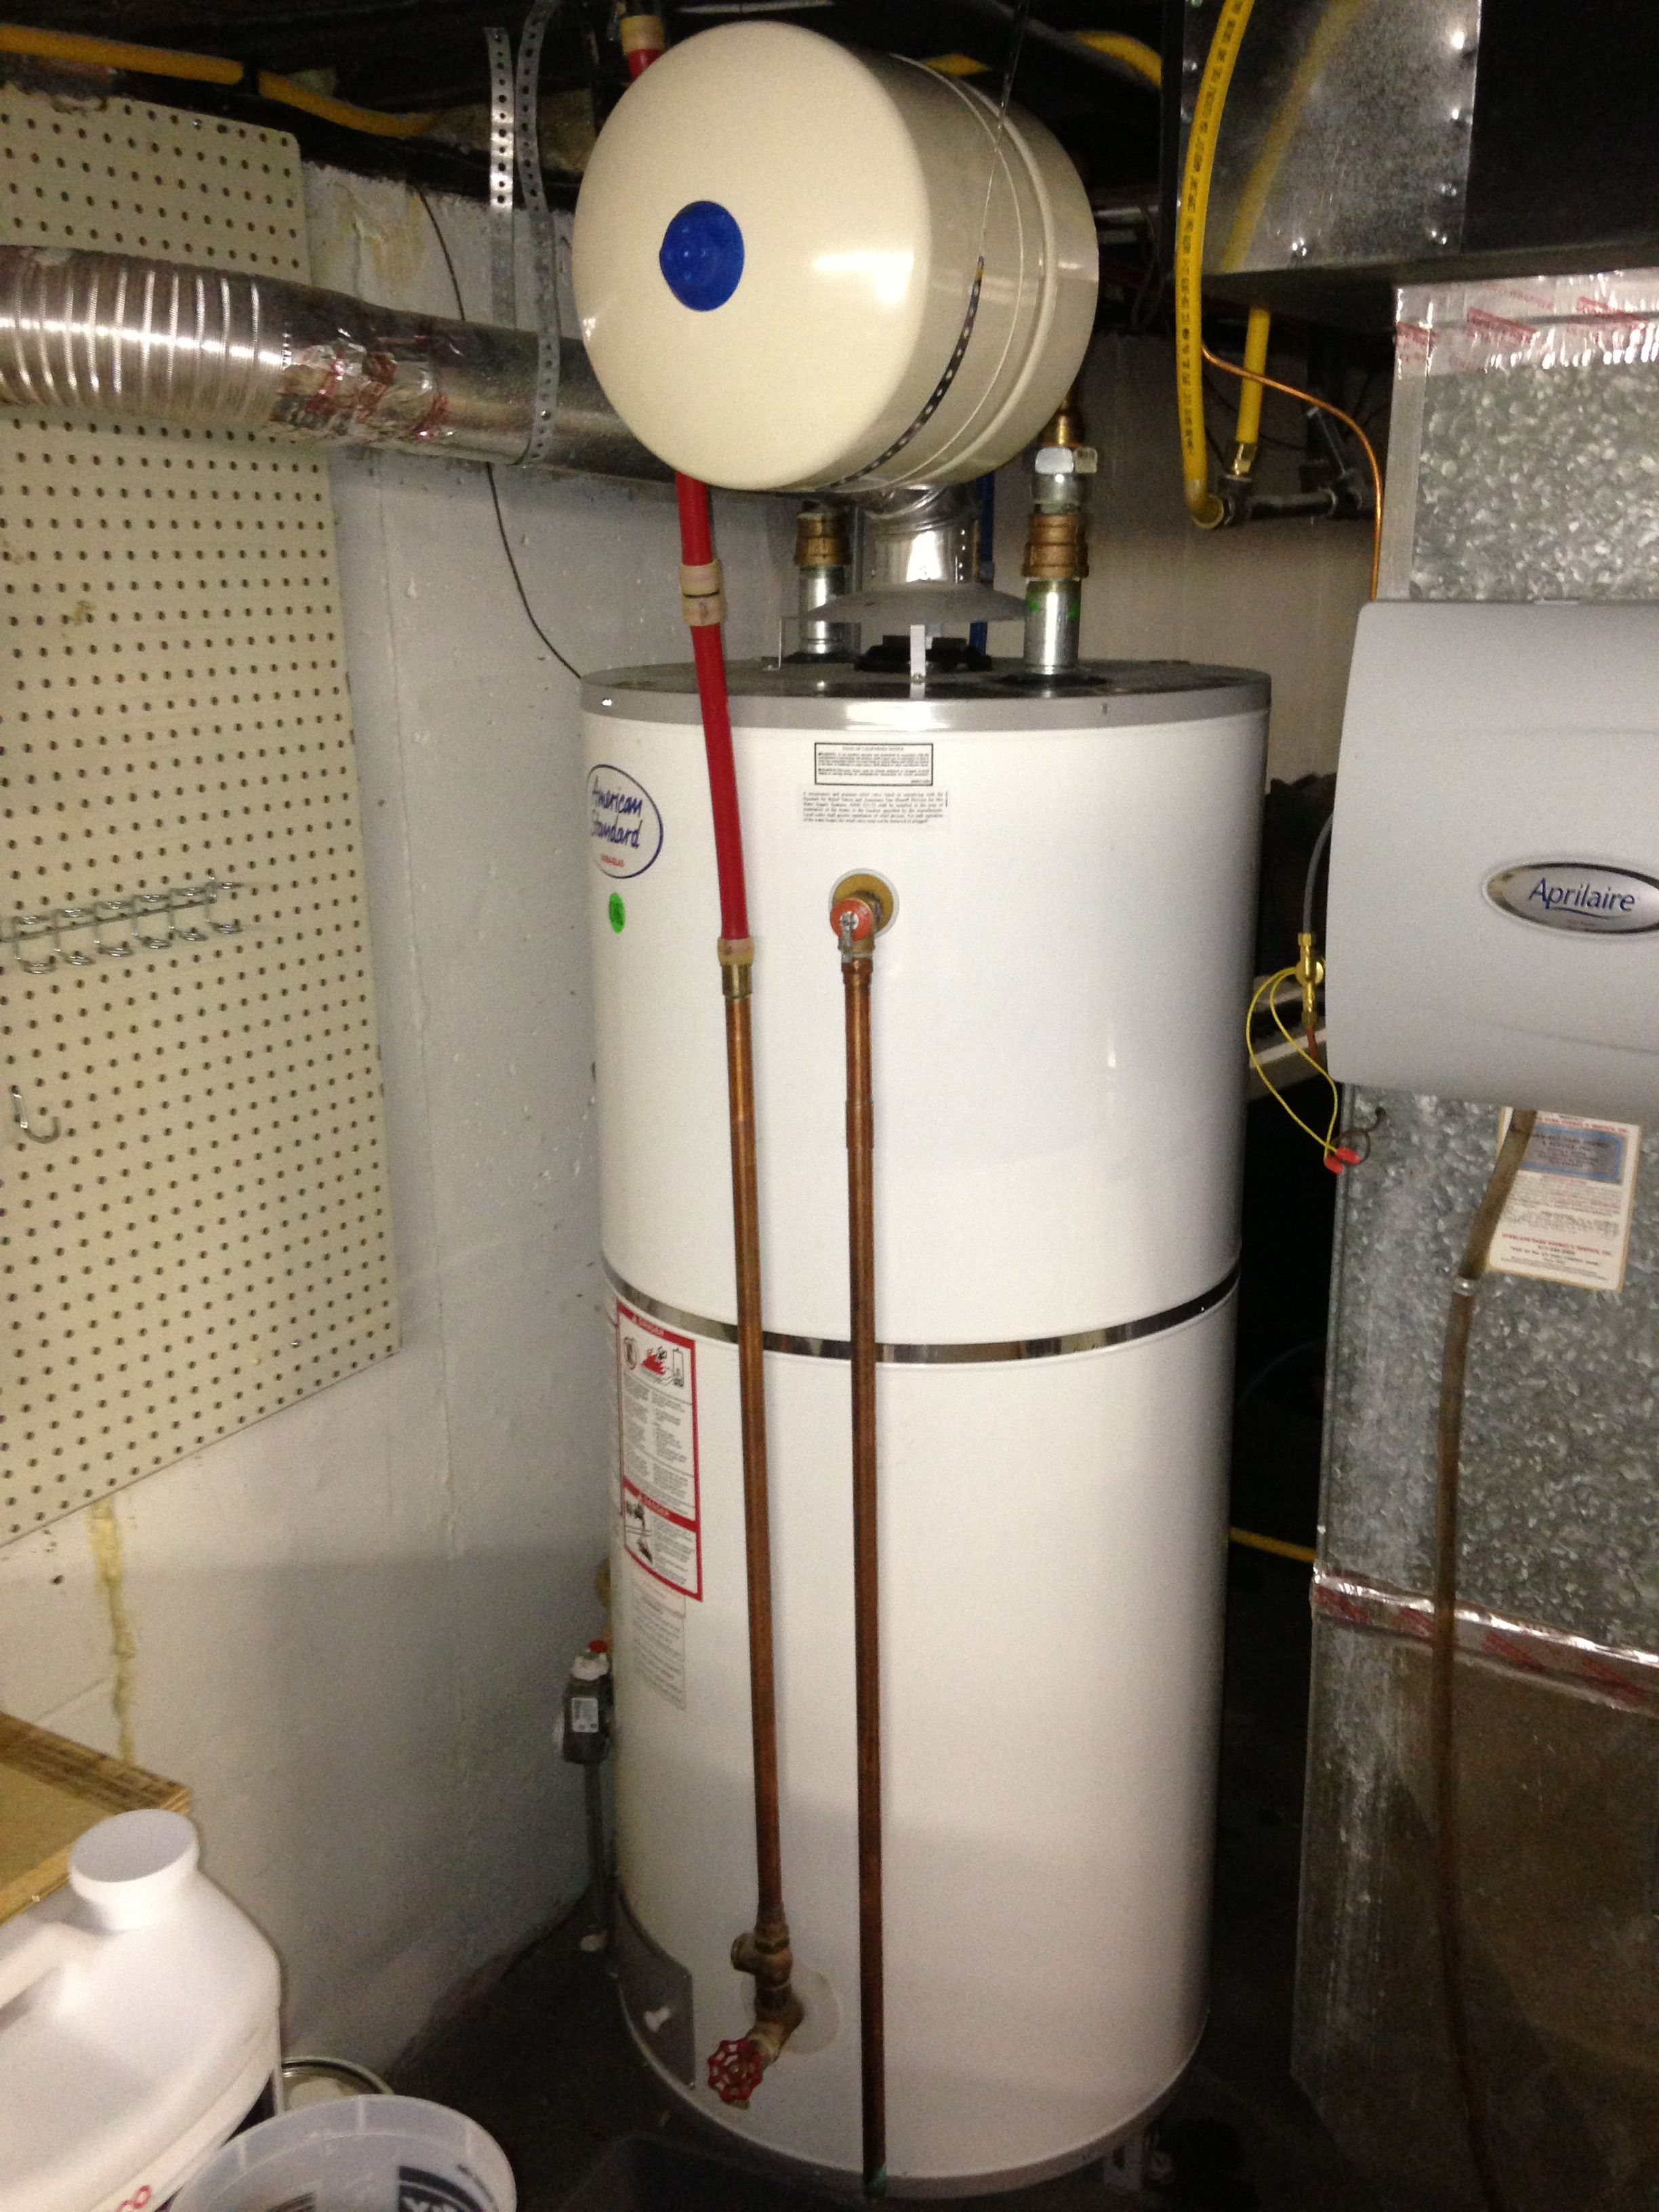 Water Heater Installed In Fairway Ks 66205 With Thermal Expansion Tank Water Heater Installation Thermal Expansion